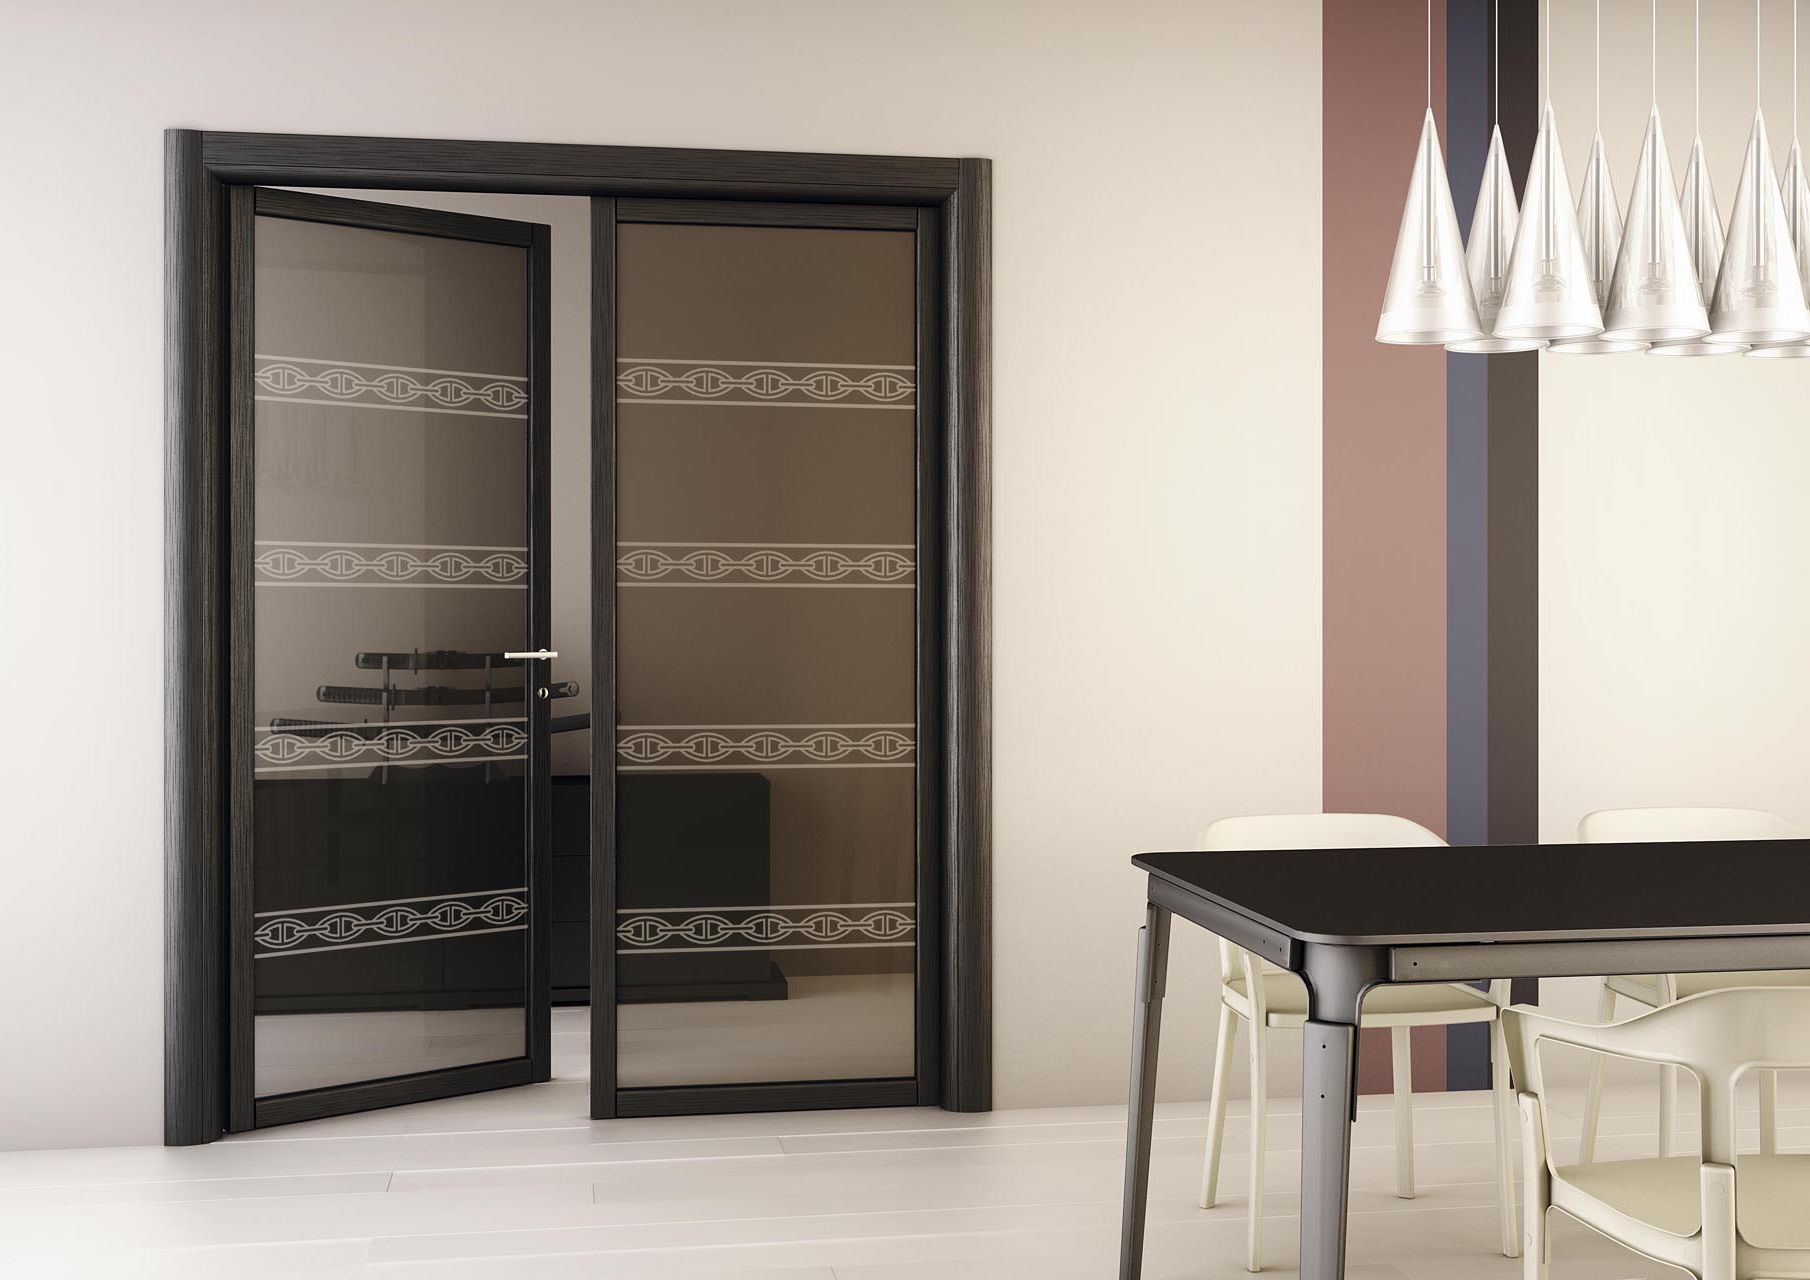 Modern dark glass double-swing doors